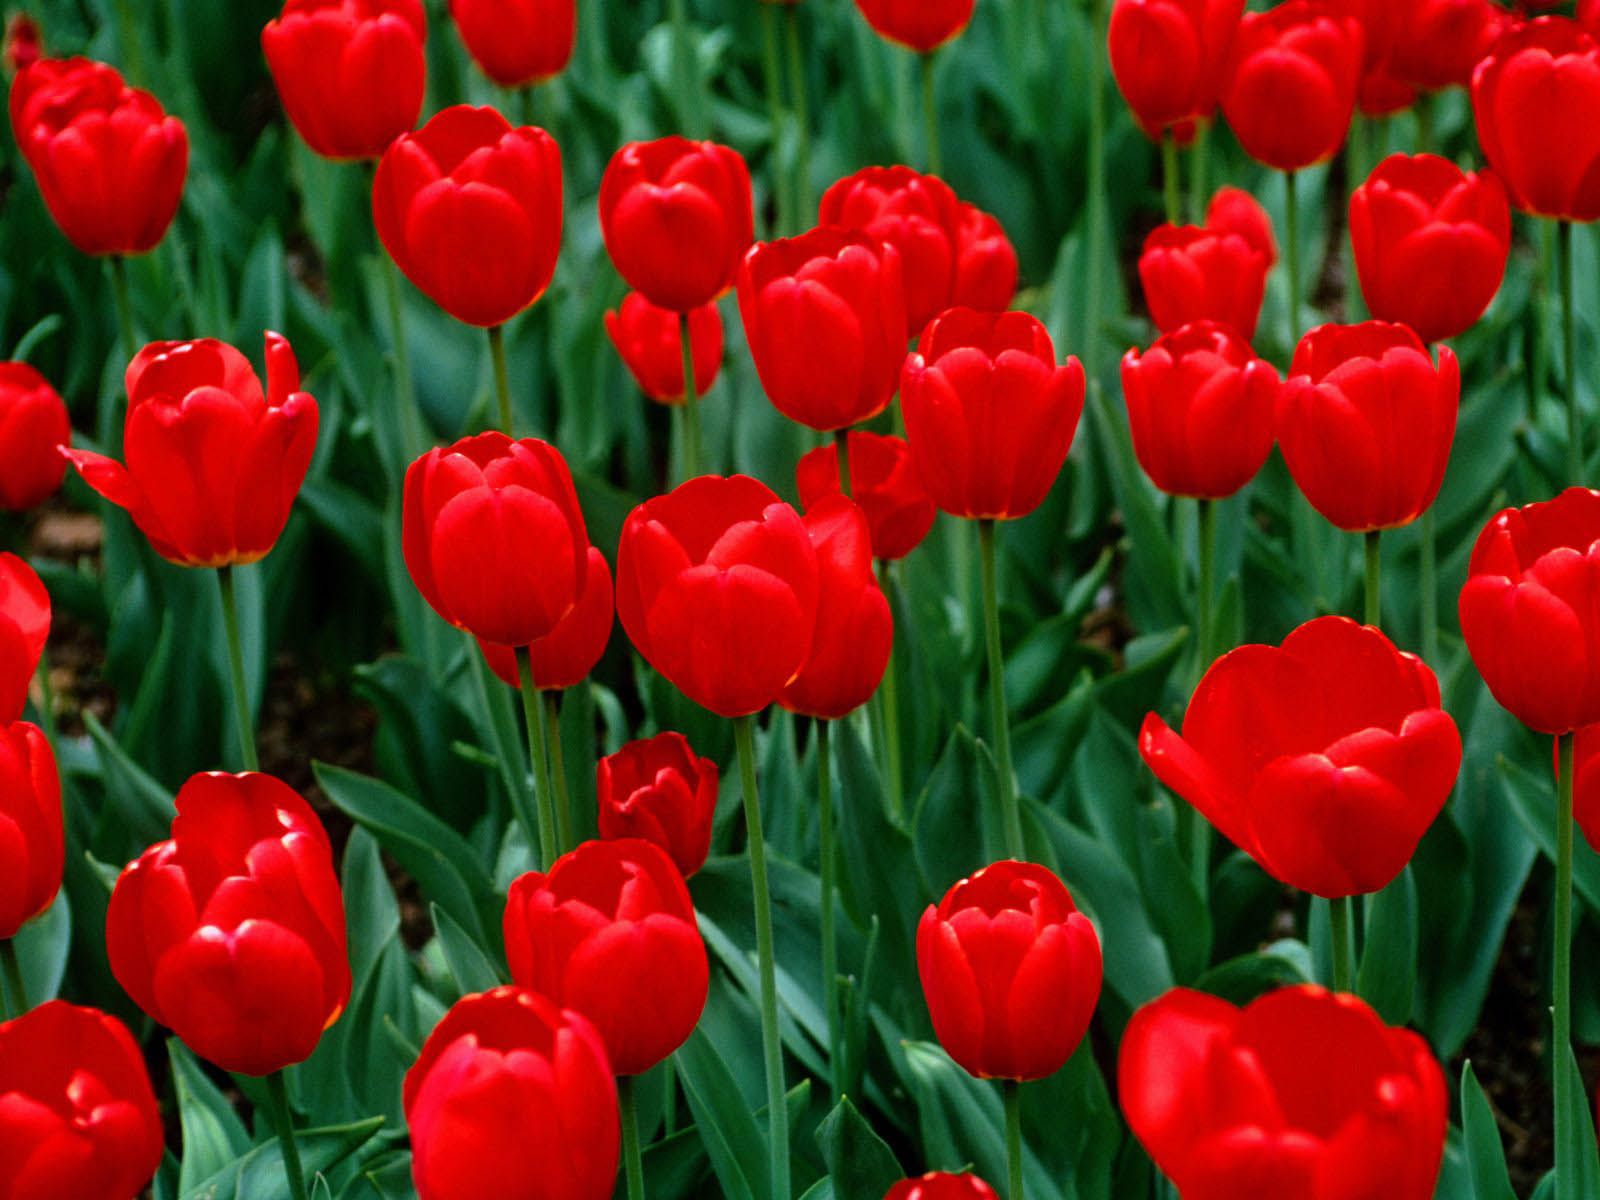 Wallpapers red tulips wallpapers - Red flower desktop wallpaper ...